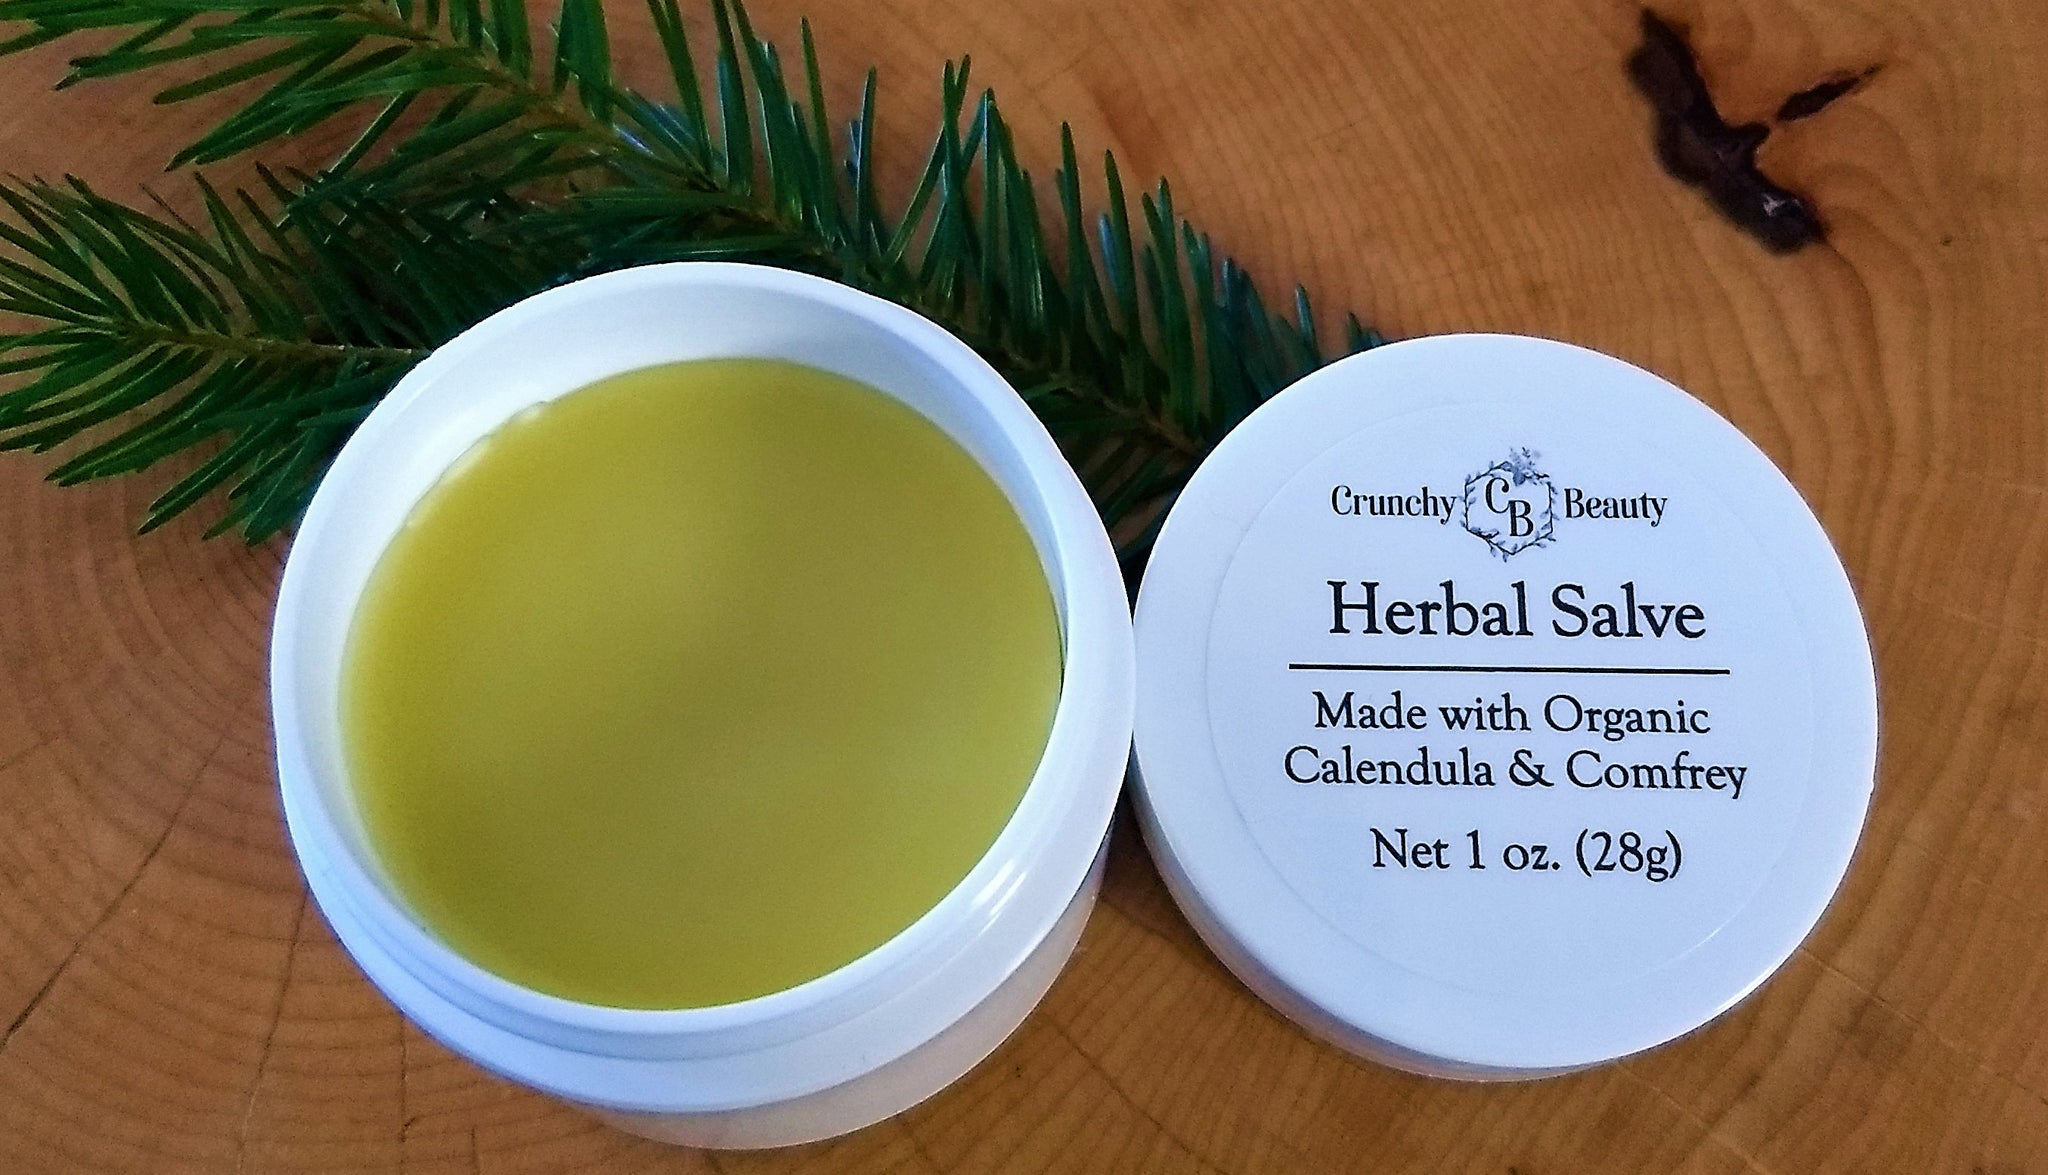 Herbal Salve - Calendula & Comfrey